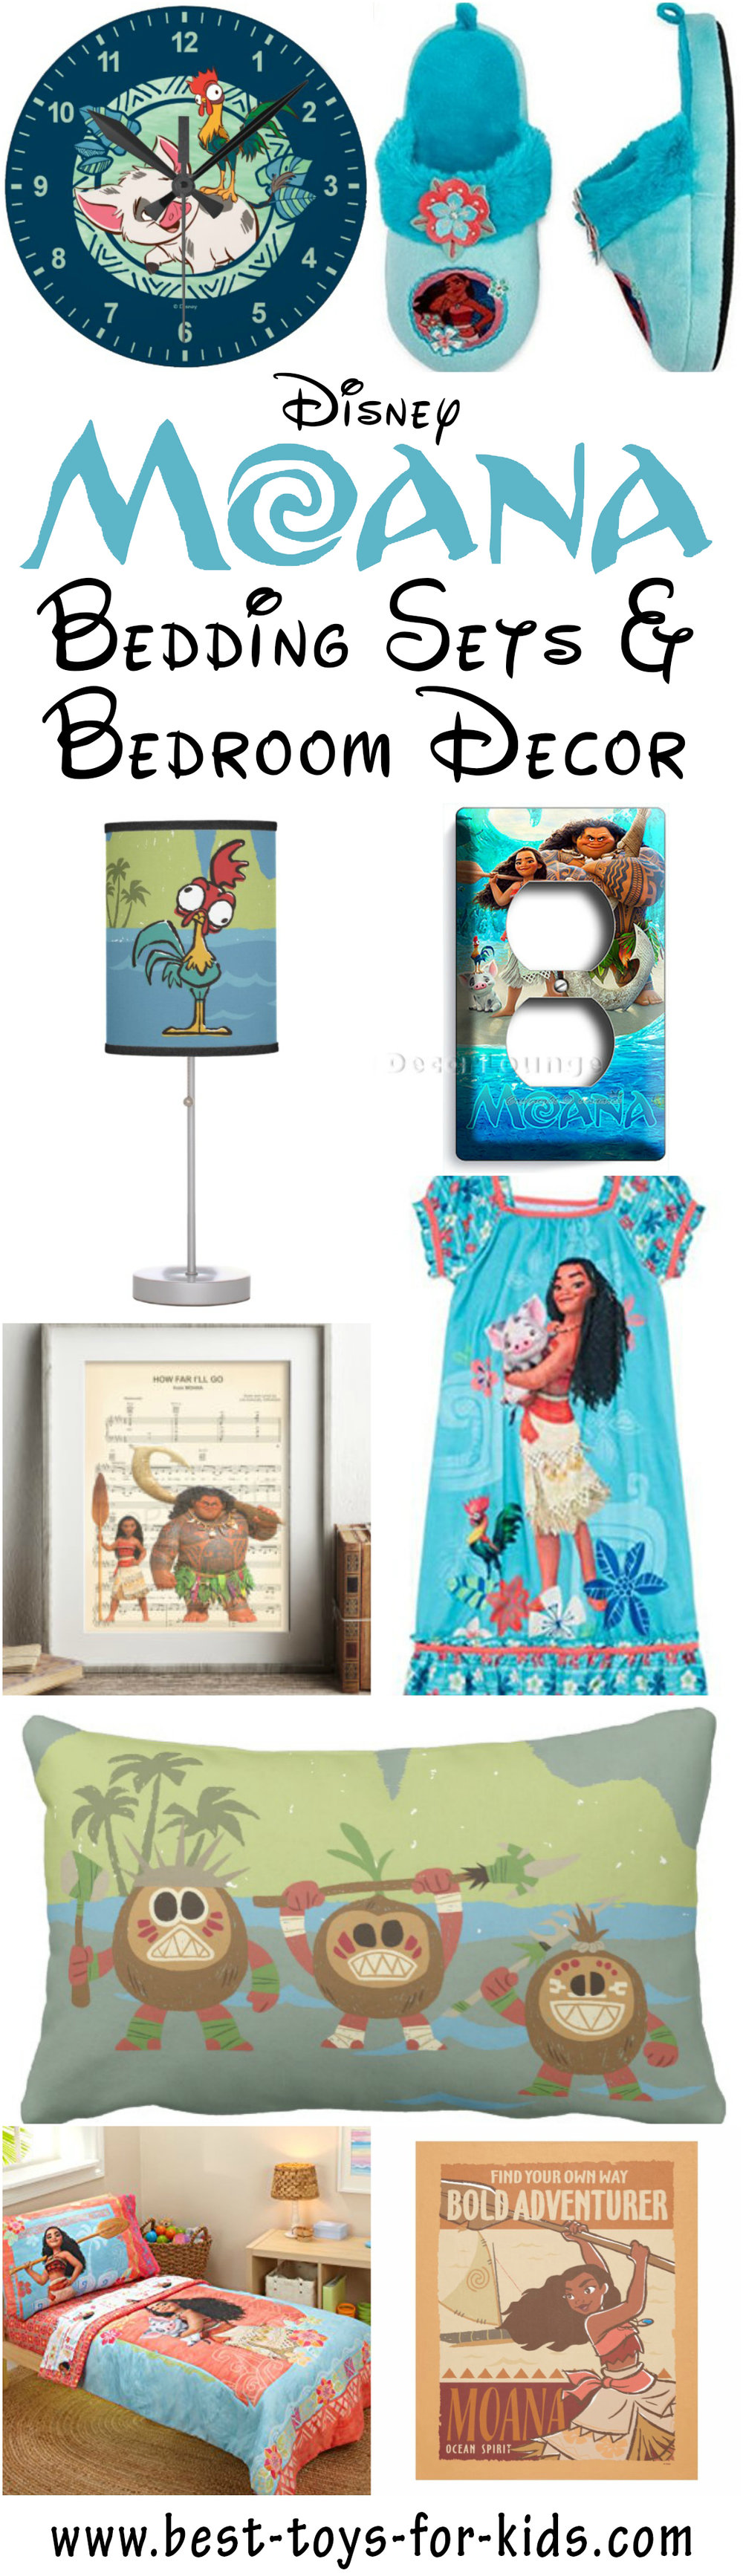 Beautiful Disney Moana Bedroom Decor